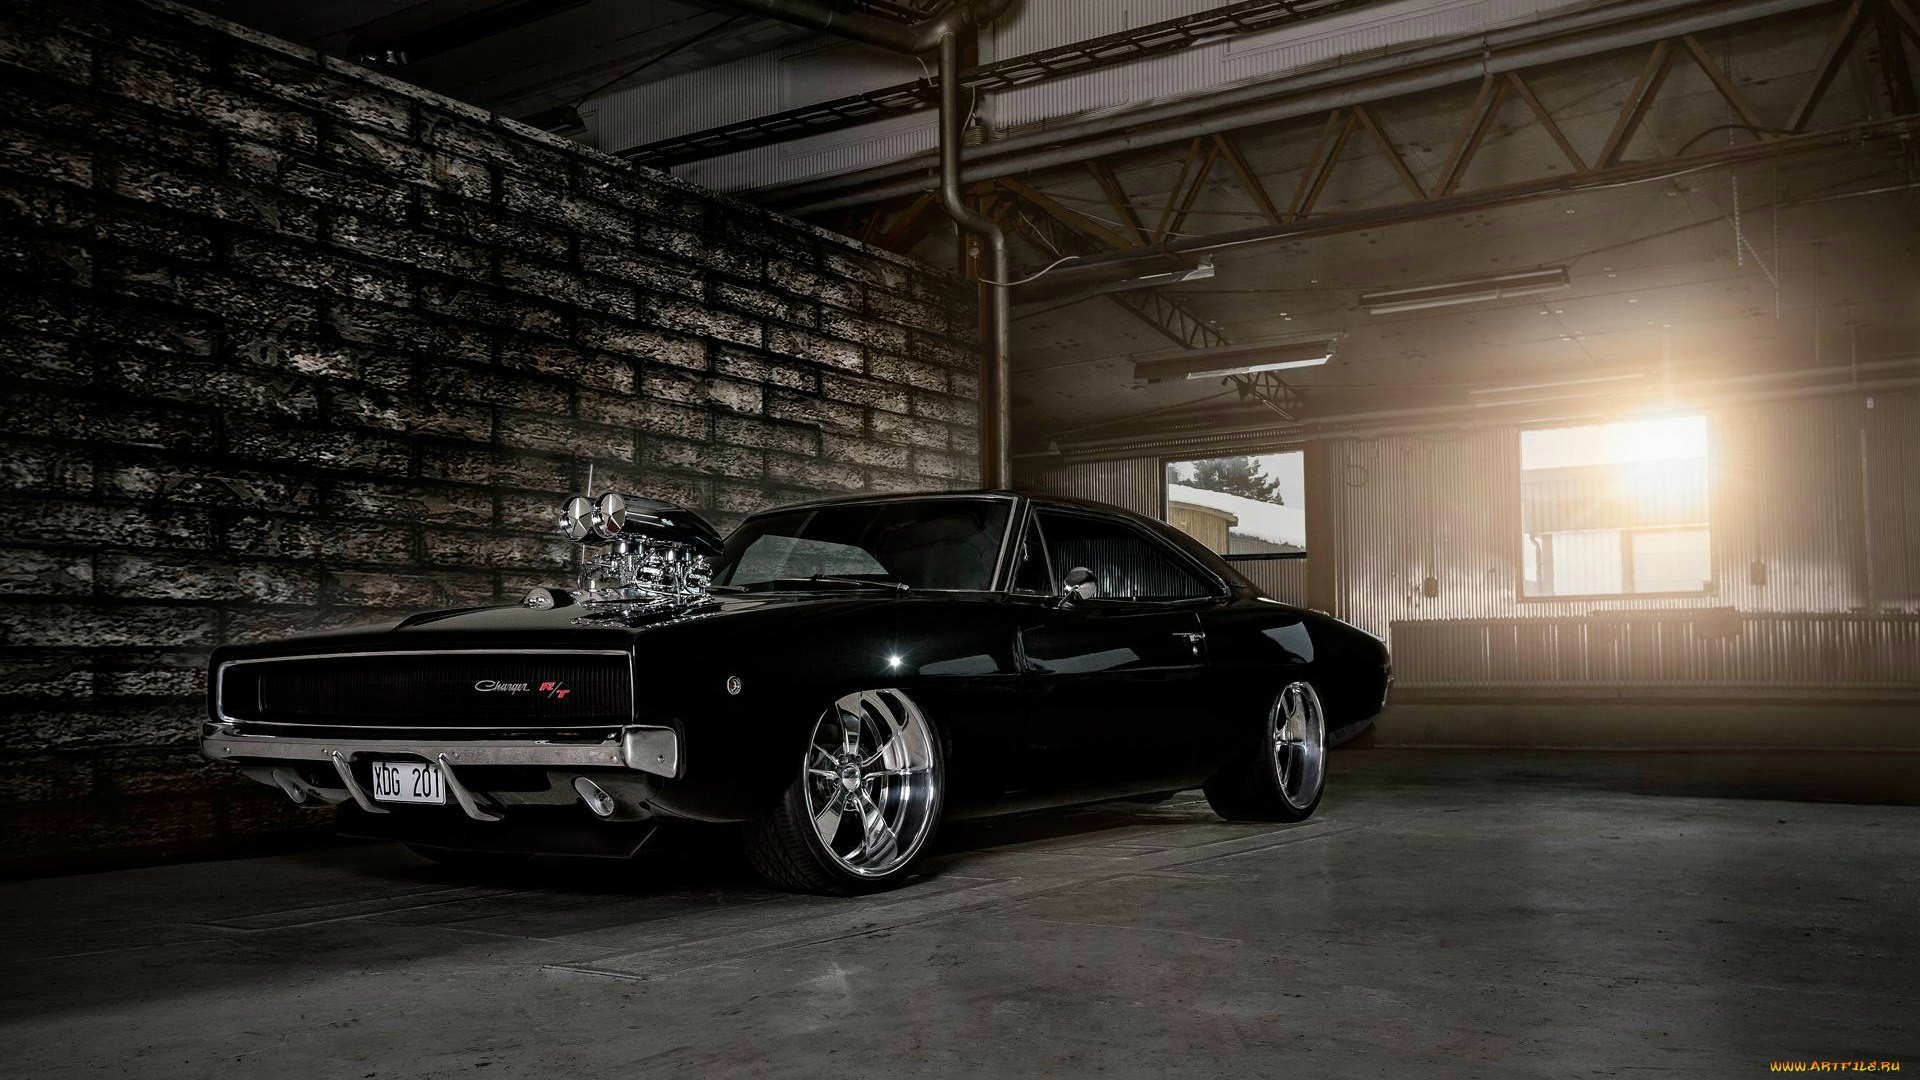 Dodge Charger Fast And Furious Wallpaper Lfccsnt Engine Information 1920x1080